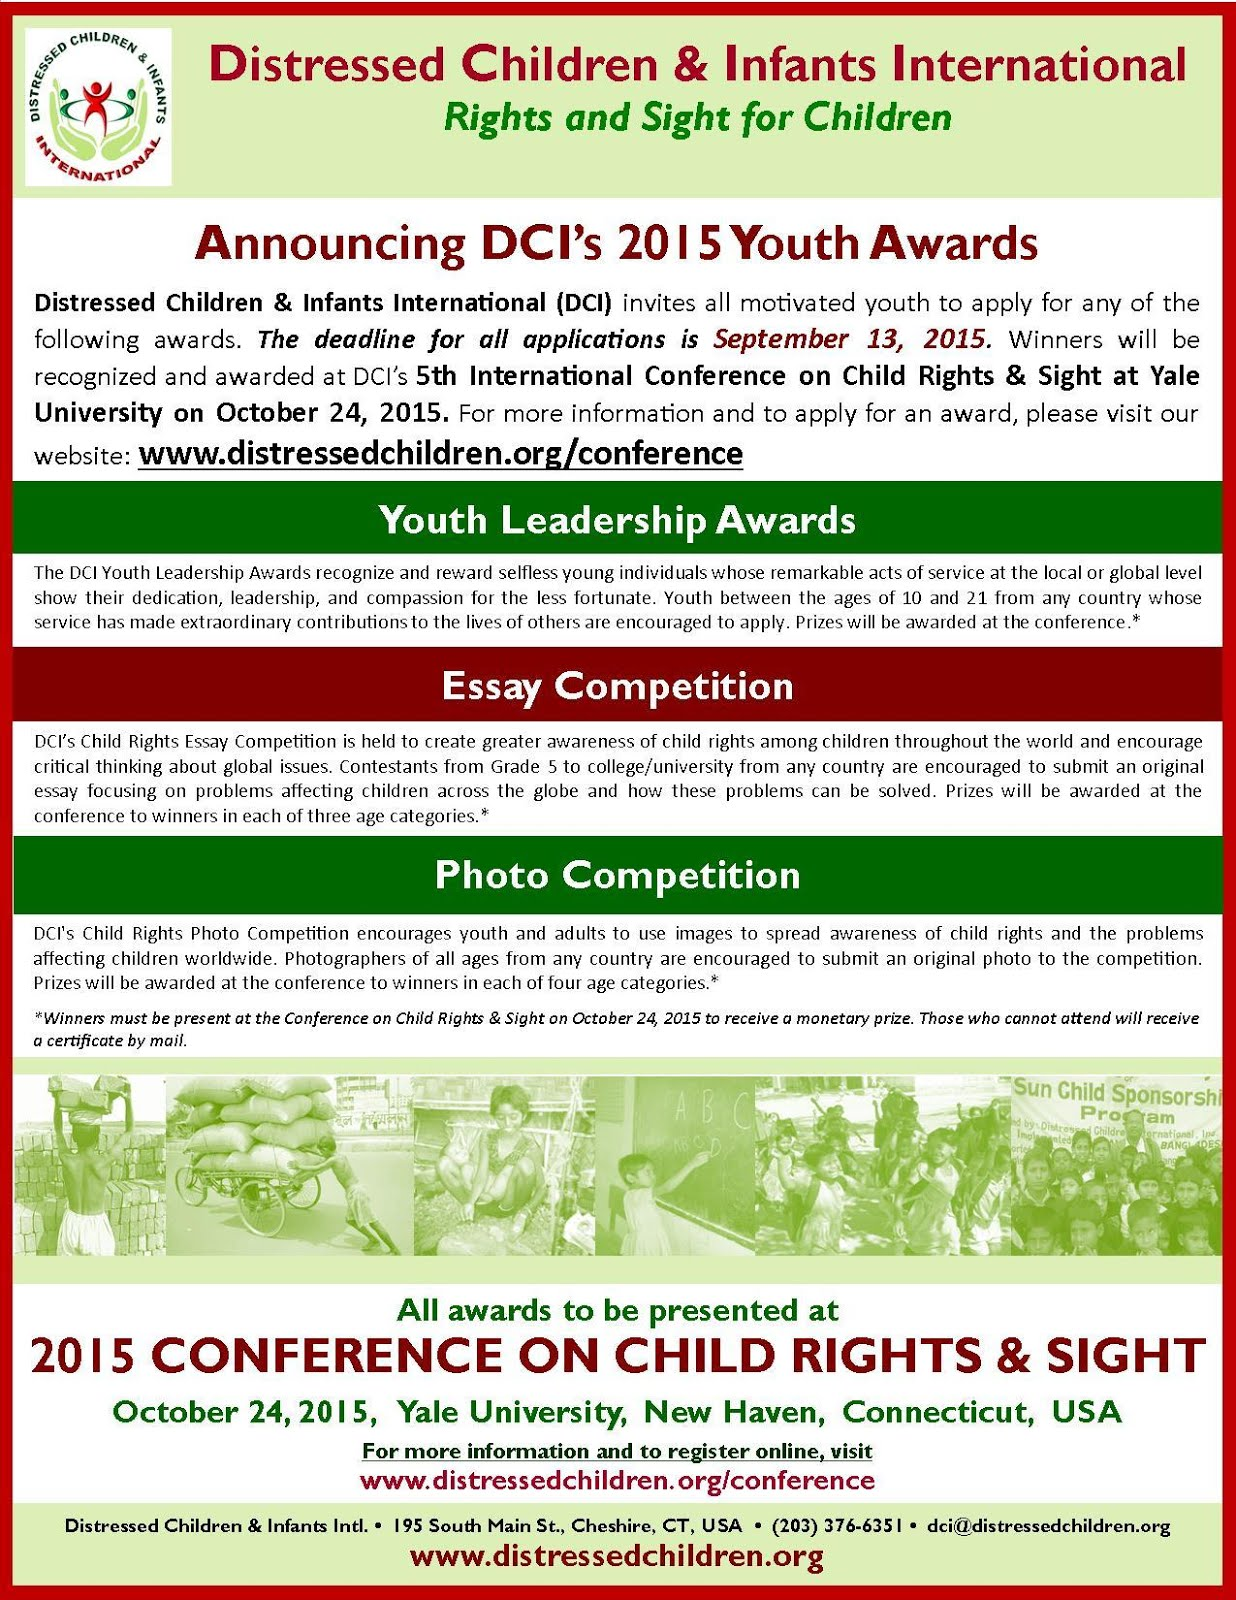 How To Write An Essay High School Usa Africa Dialogue Series   Dci Youth Leadership Awards  Child  Rights Essay Competition Columbia Business School Essay also Essay Vs Paper Dialogues Usa Africa Dialogue Series   Dci Youth Leadership  Advanced English Essays